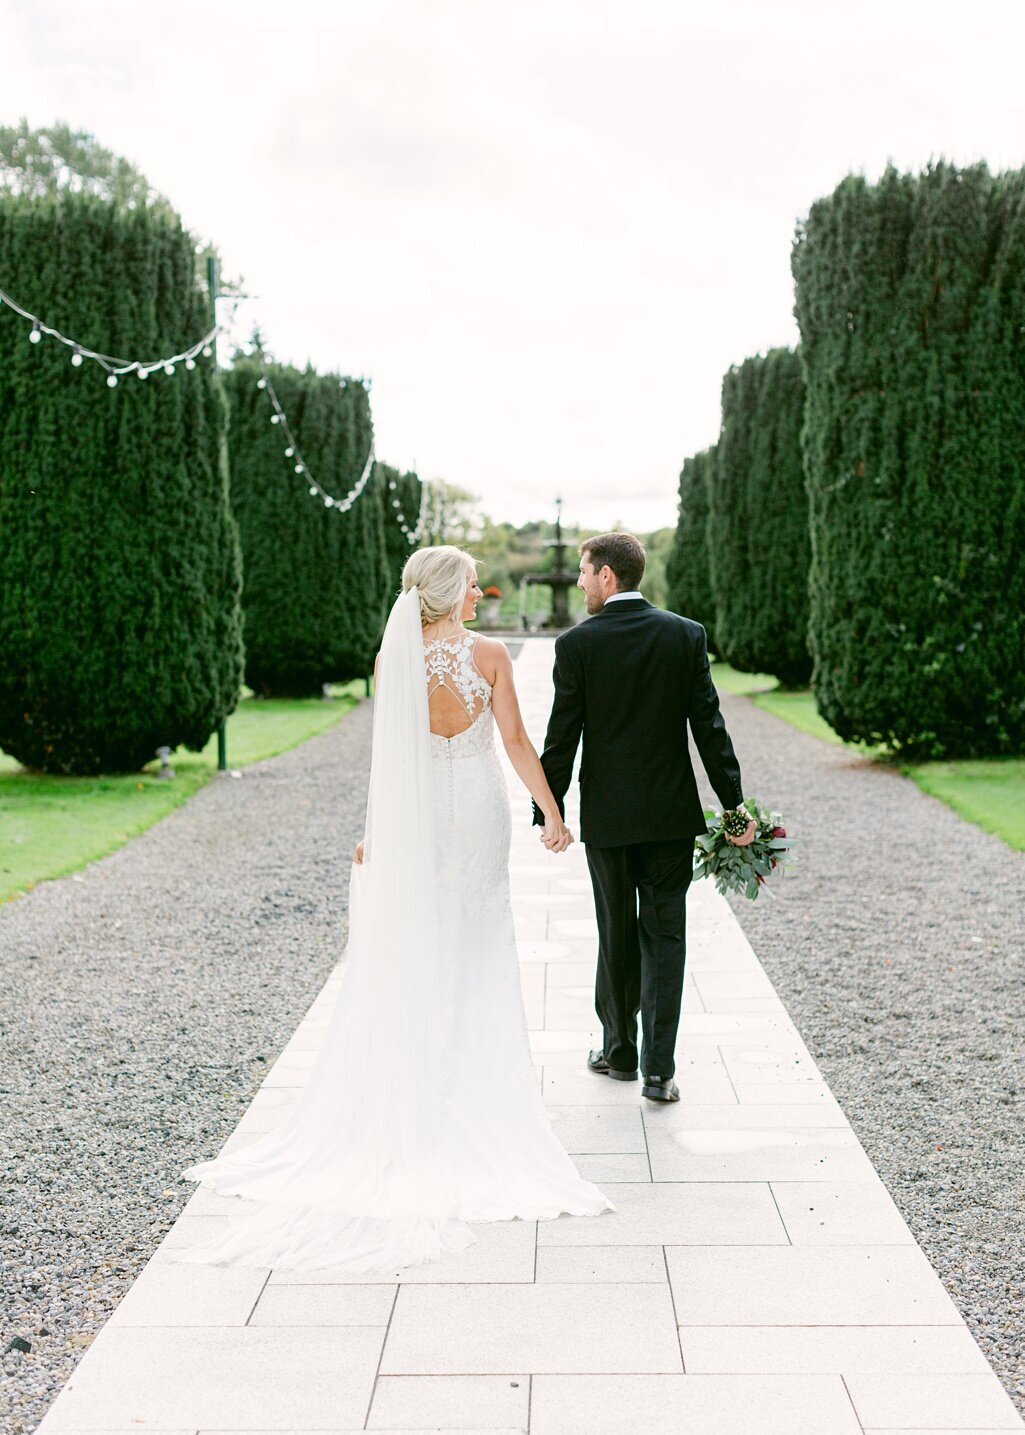 Jessie-Barksdale-Photography_K-Club-Ireland-Destination-Wedding-Photographer_0071